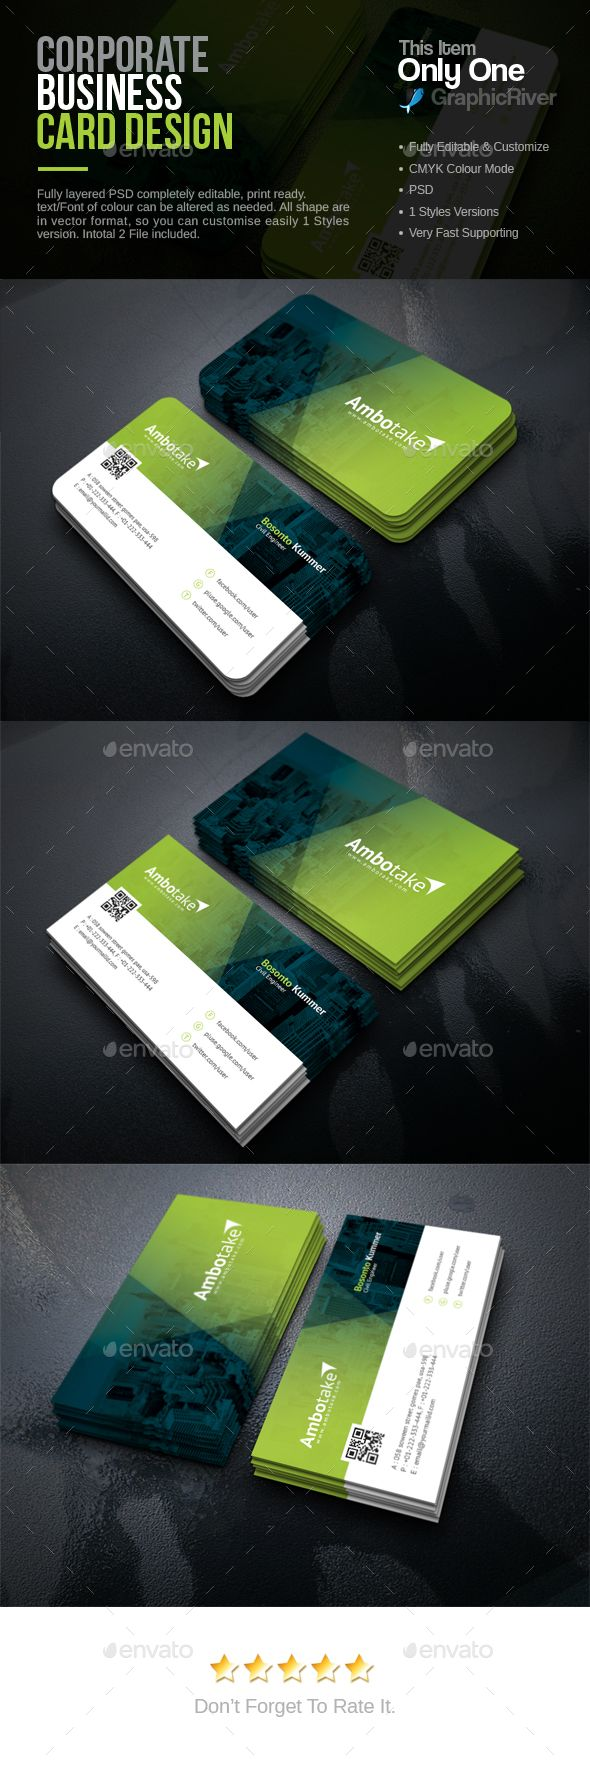 Corporate business card template psd download here http corporate business card template psd download here httpgraphicriver reheart Gallery